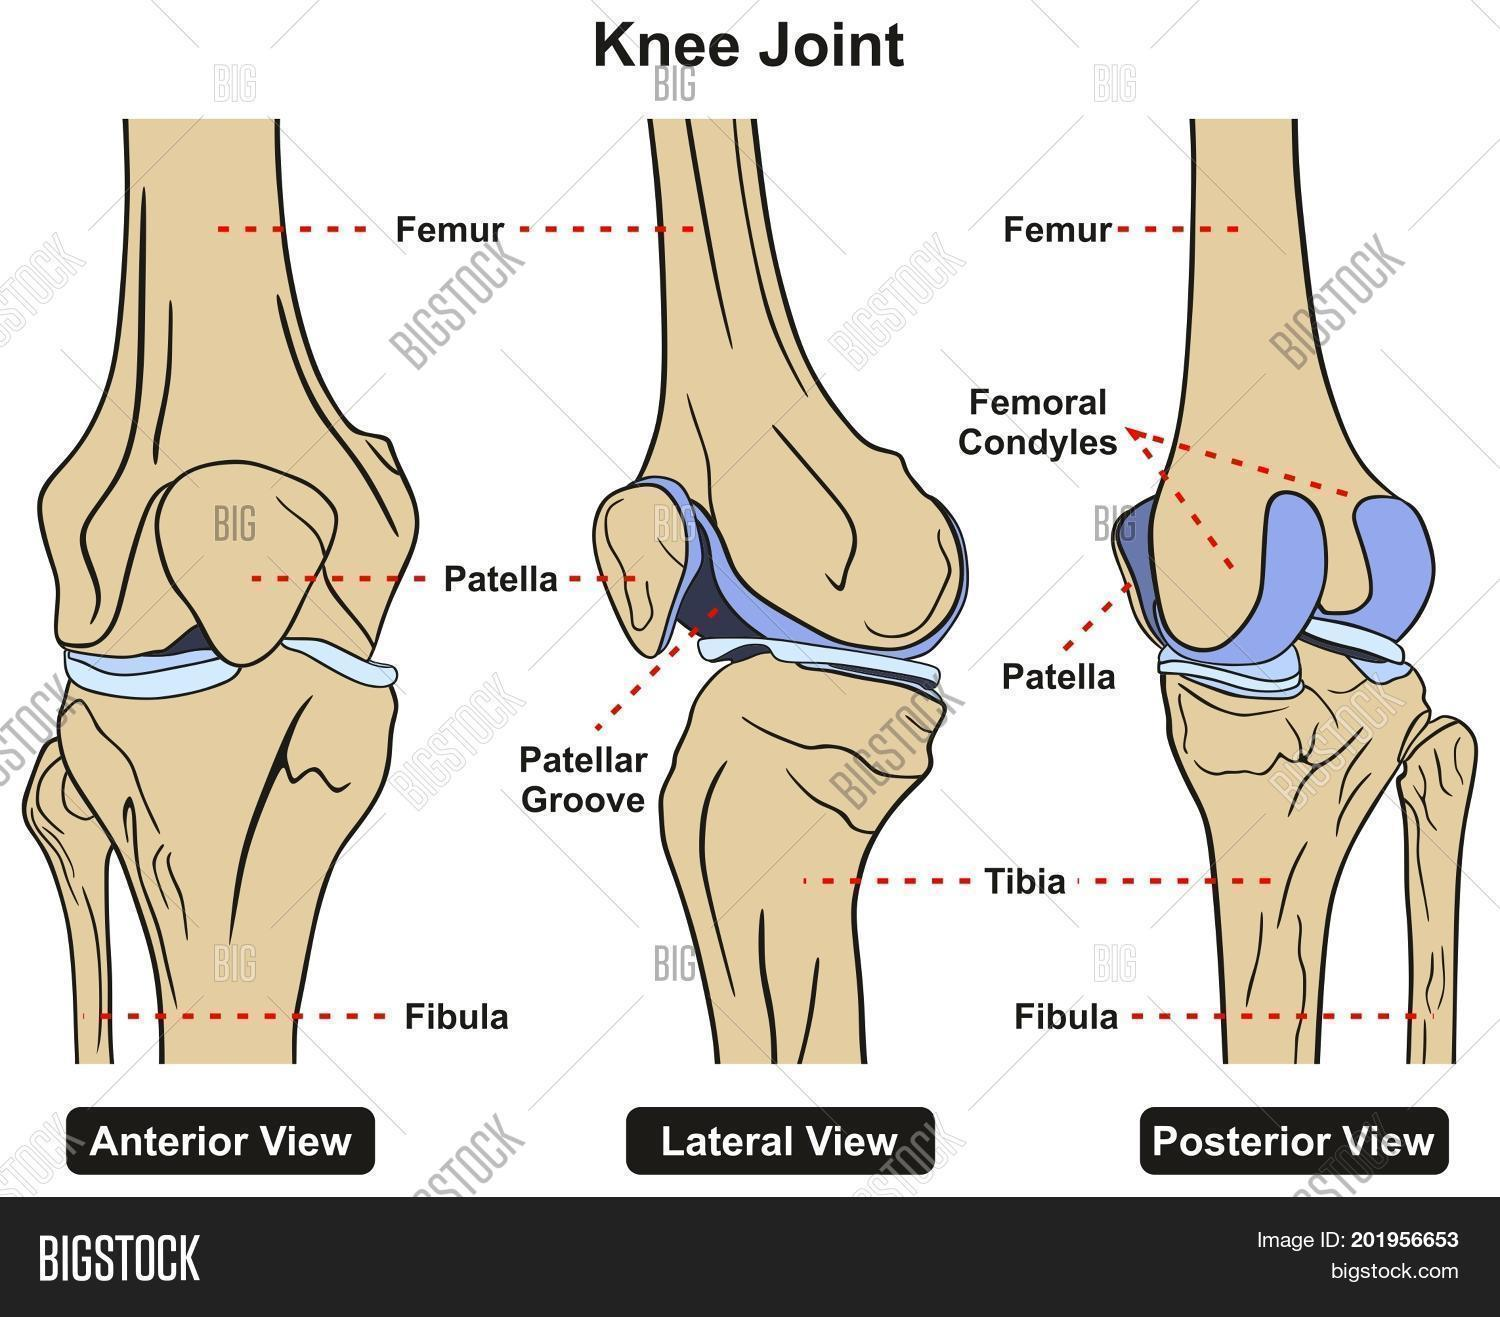 Knee Joint Human Body Image Photo Free Trial Bigstock